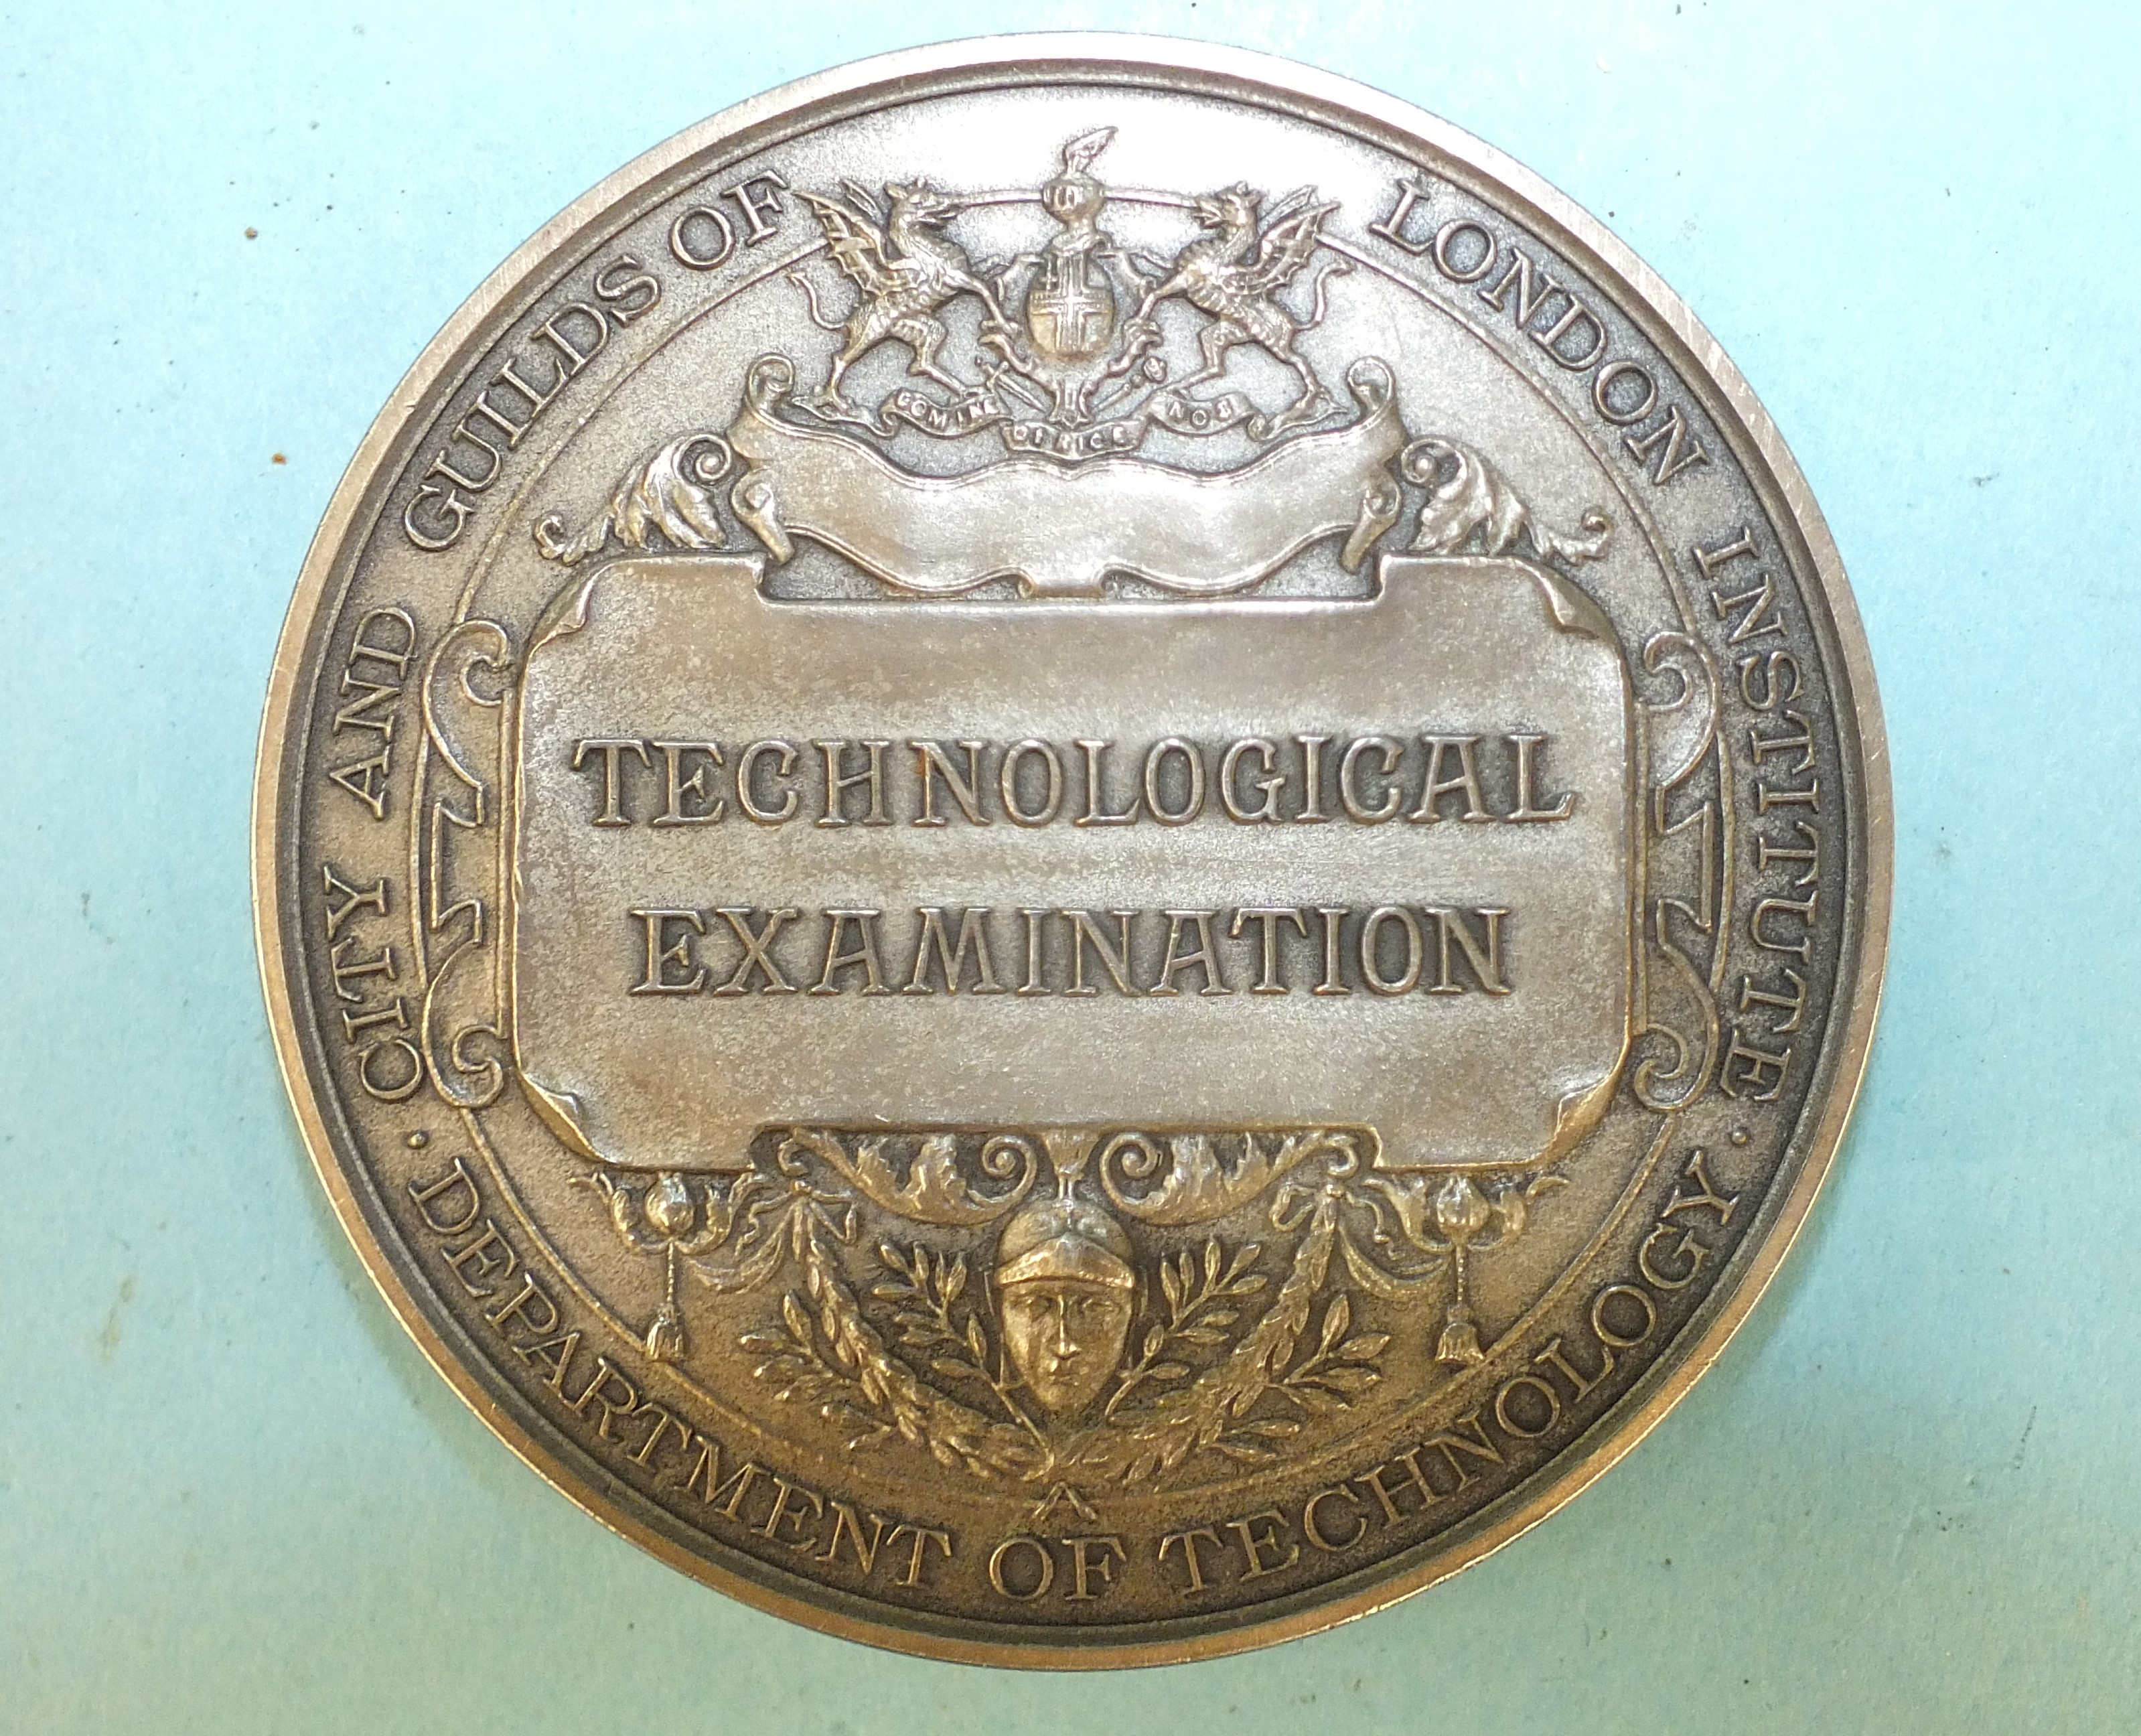 A WWI bronze death plaque awarded to Charles Simmons, a 1951 Technological Examination medallion and - Image 3 of 3